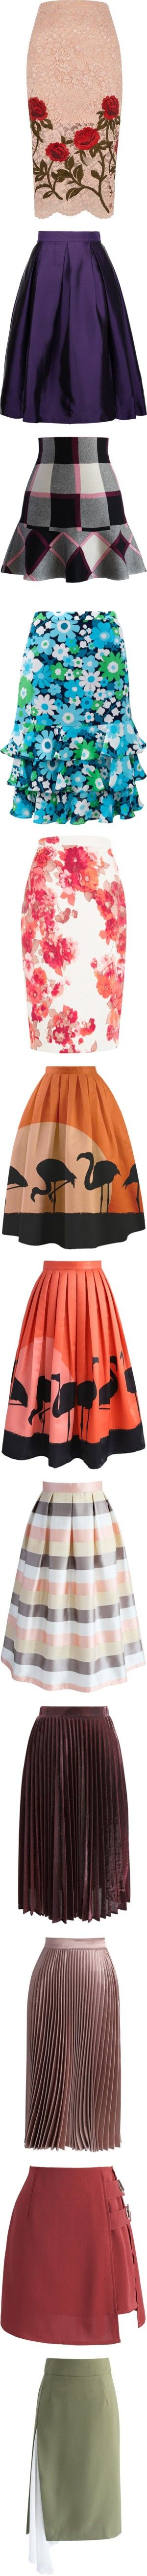 SKIRTS/EIGHT by kazza-smith on Polyvore featuring women's fashion, skirts, lacy skirt, ski skirt, lace pencil skirt, tall skirts, knee length pencil skirt, dark purple, purple skirt and long polka dot skirt